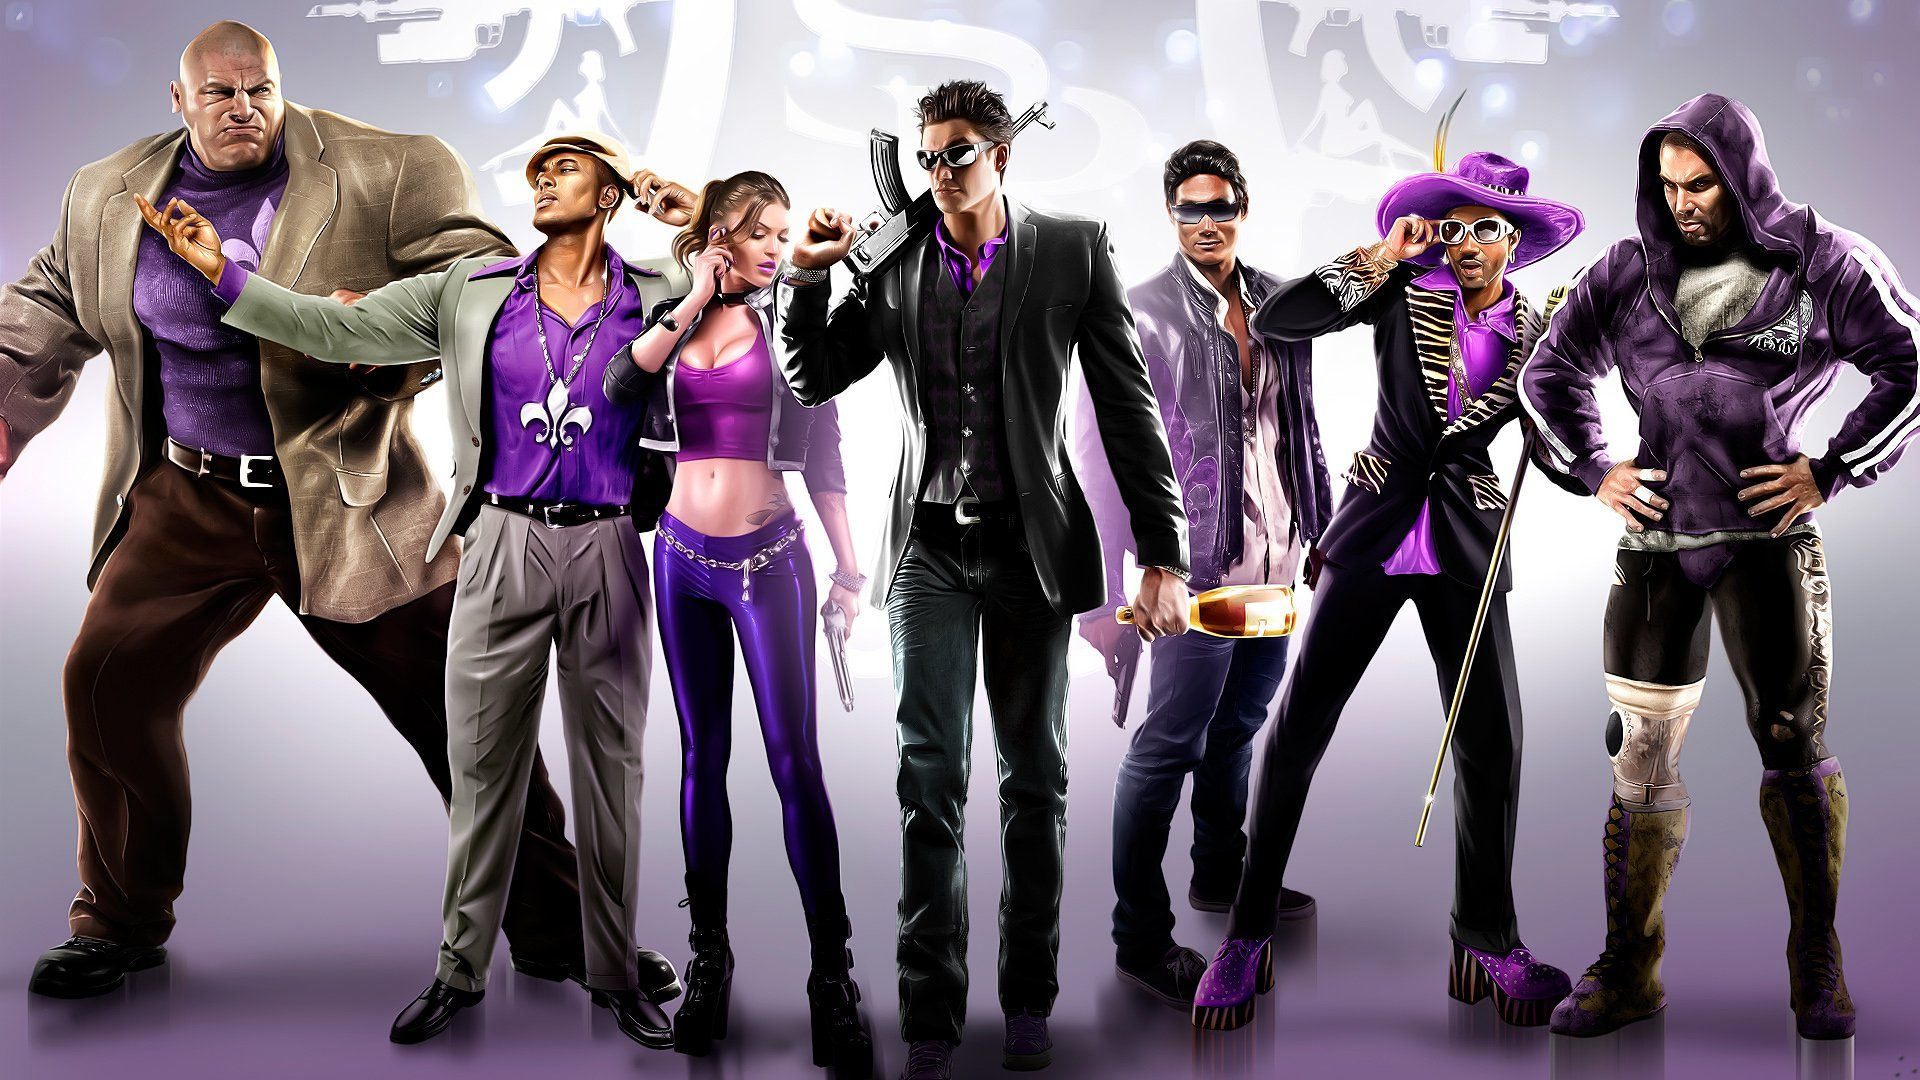 Saints Row Wallpapers Top Free Saints Row Backgrounds